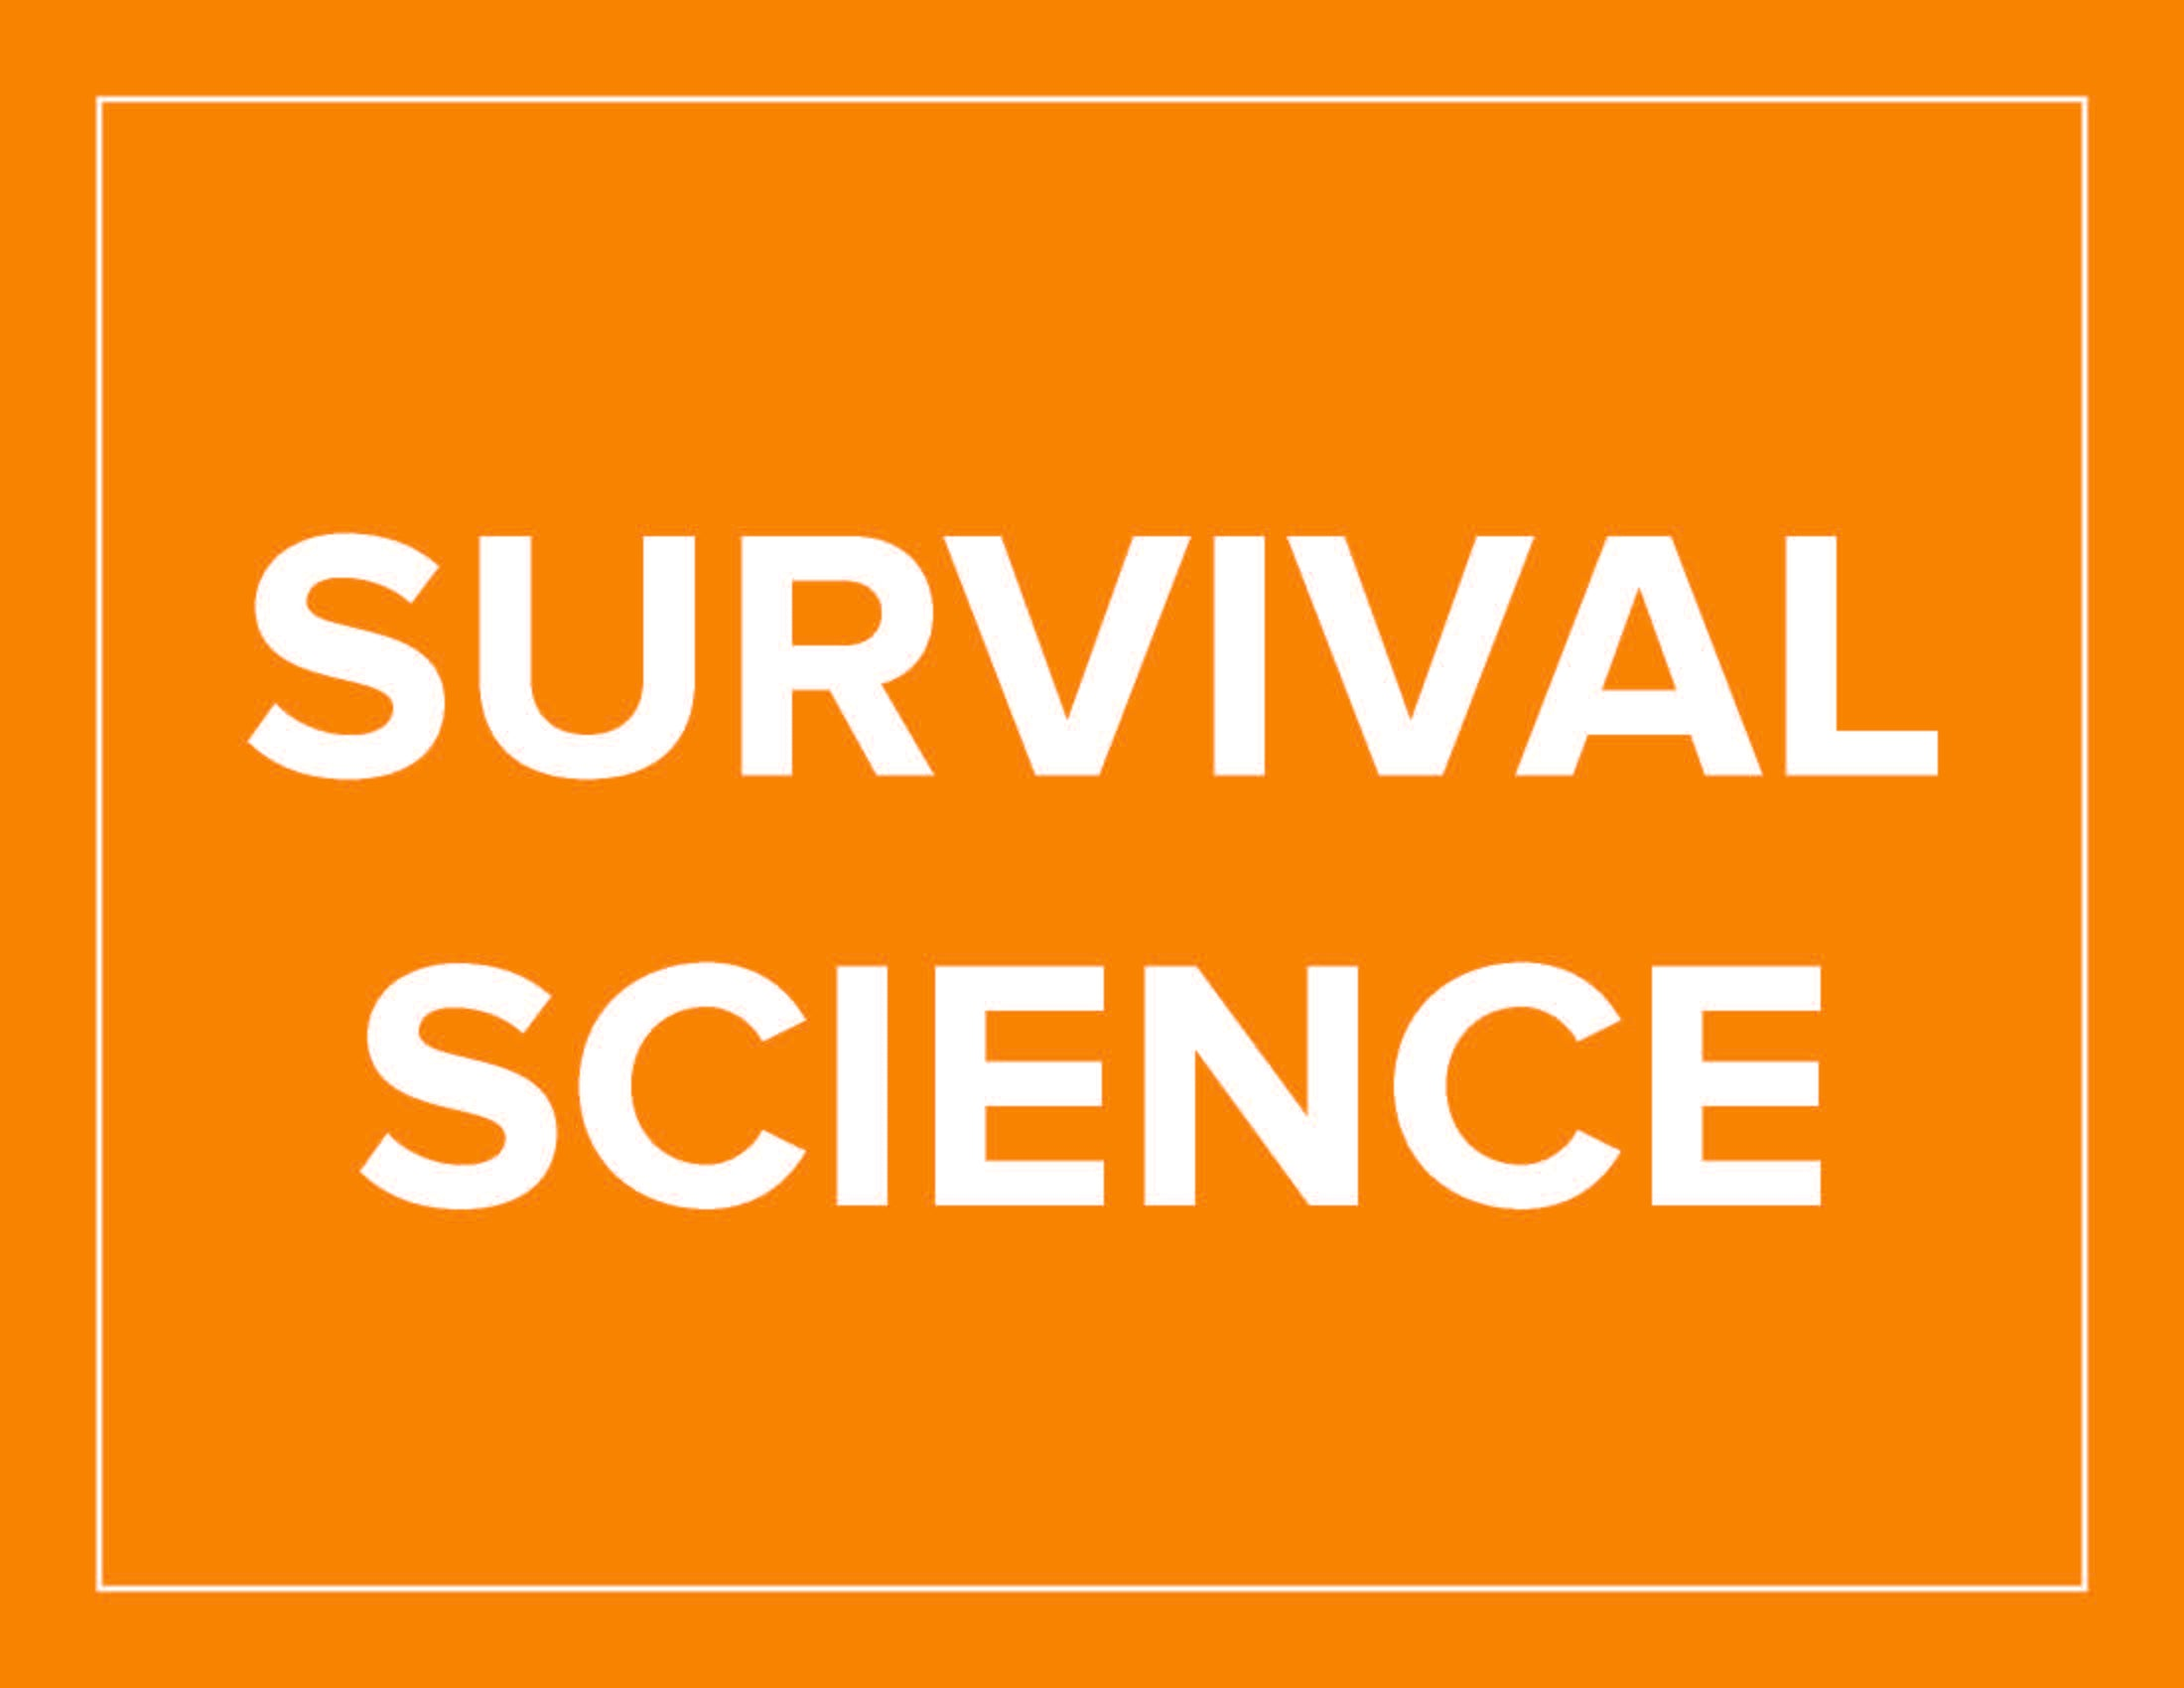 Survival Science July 12-16, 2021 Grades 1 - 4